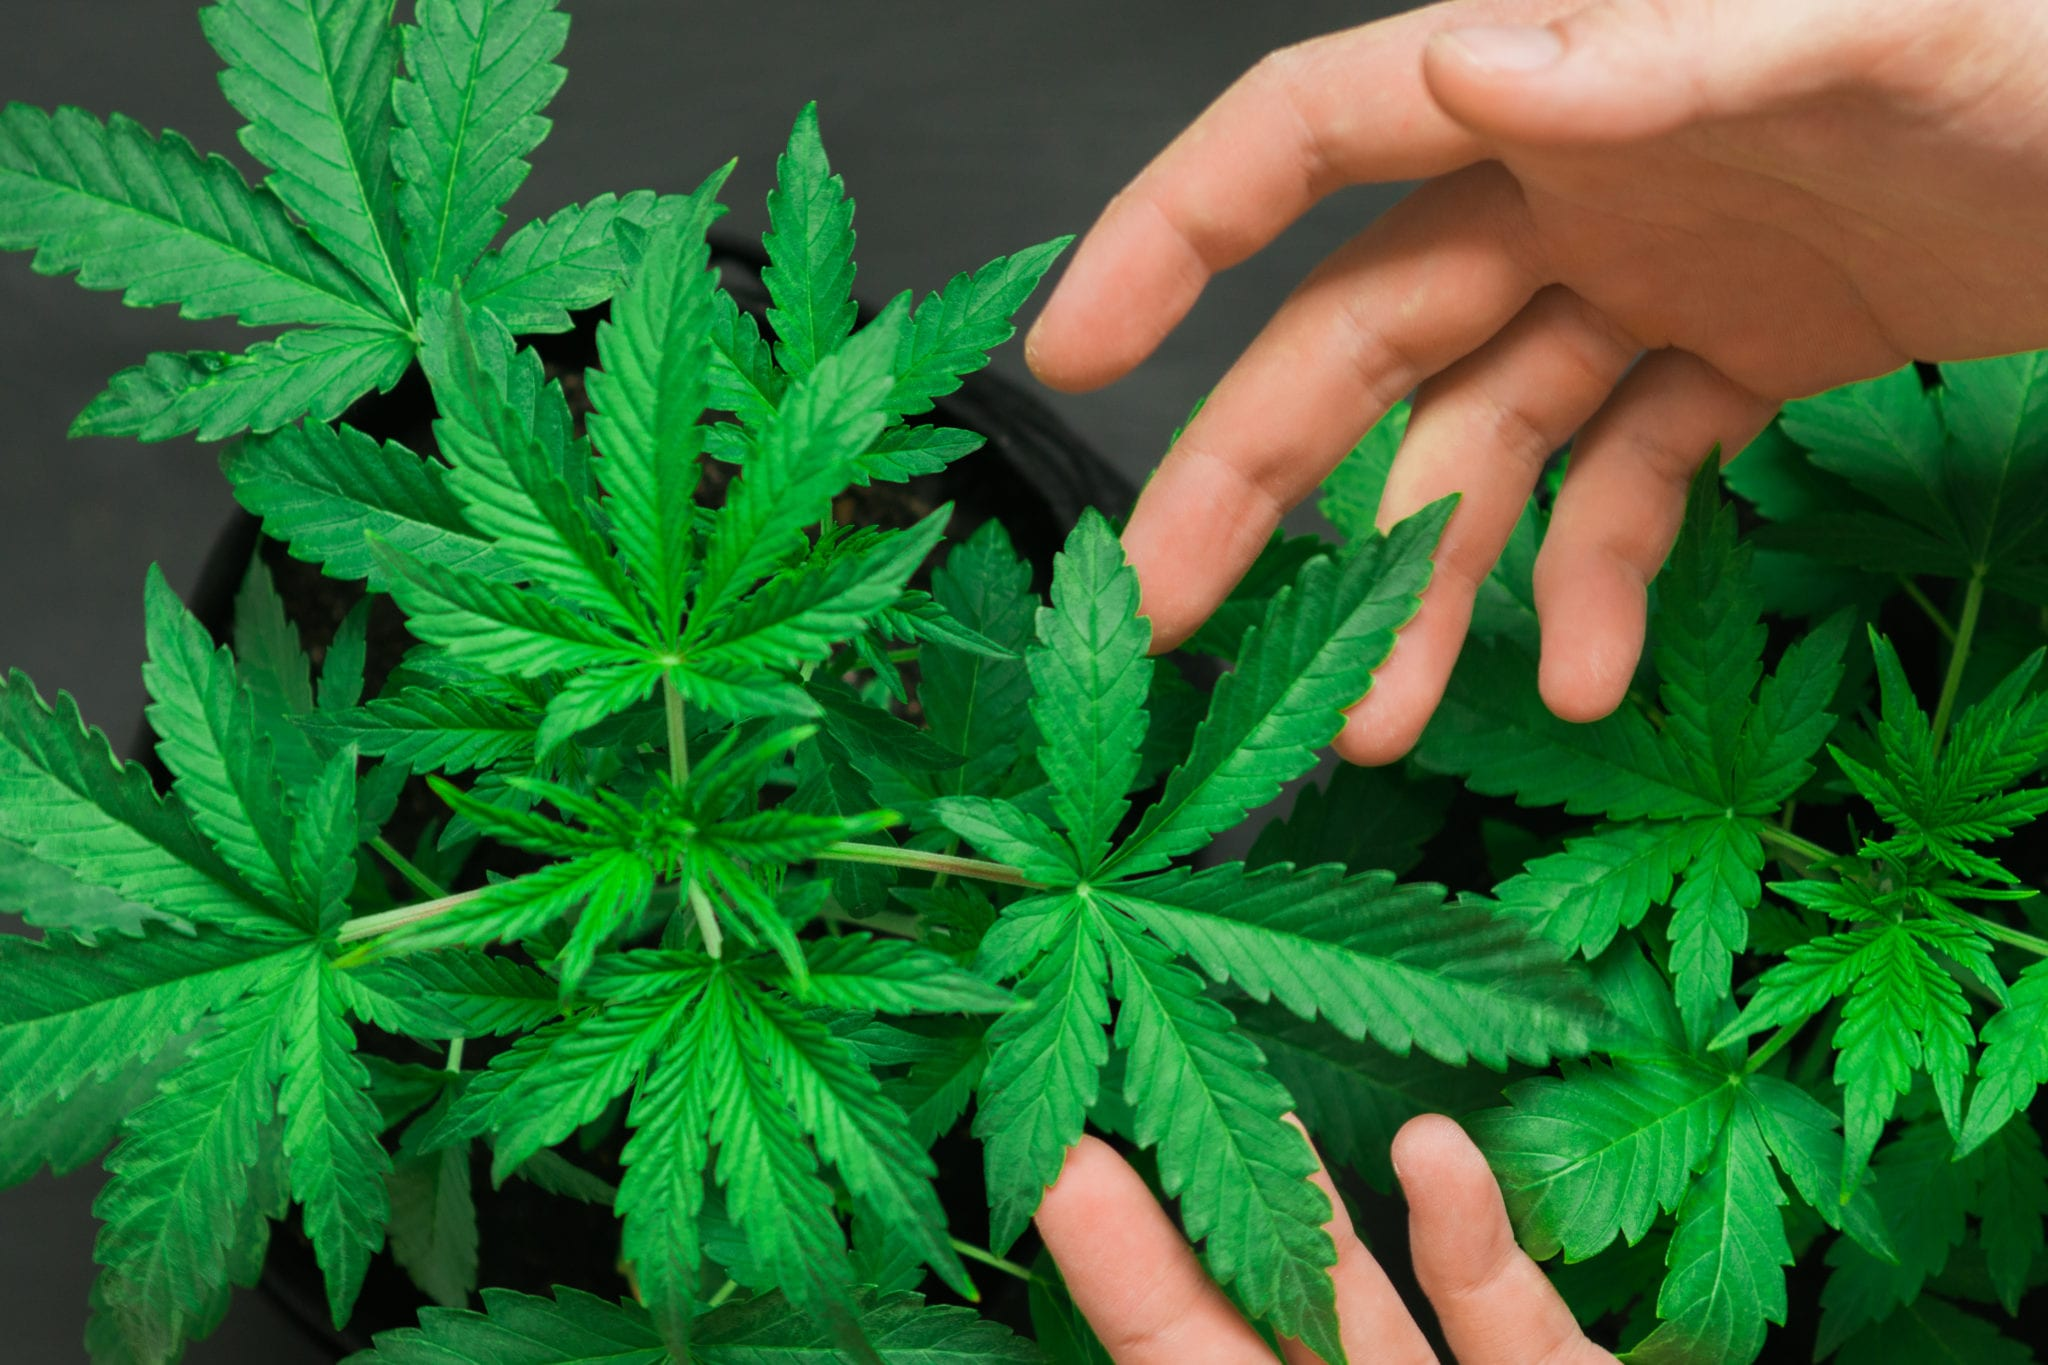 Canberra Becomes First City in Australia to Legalize Recreational Cannabis